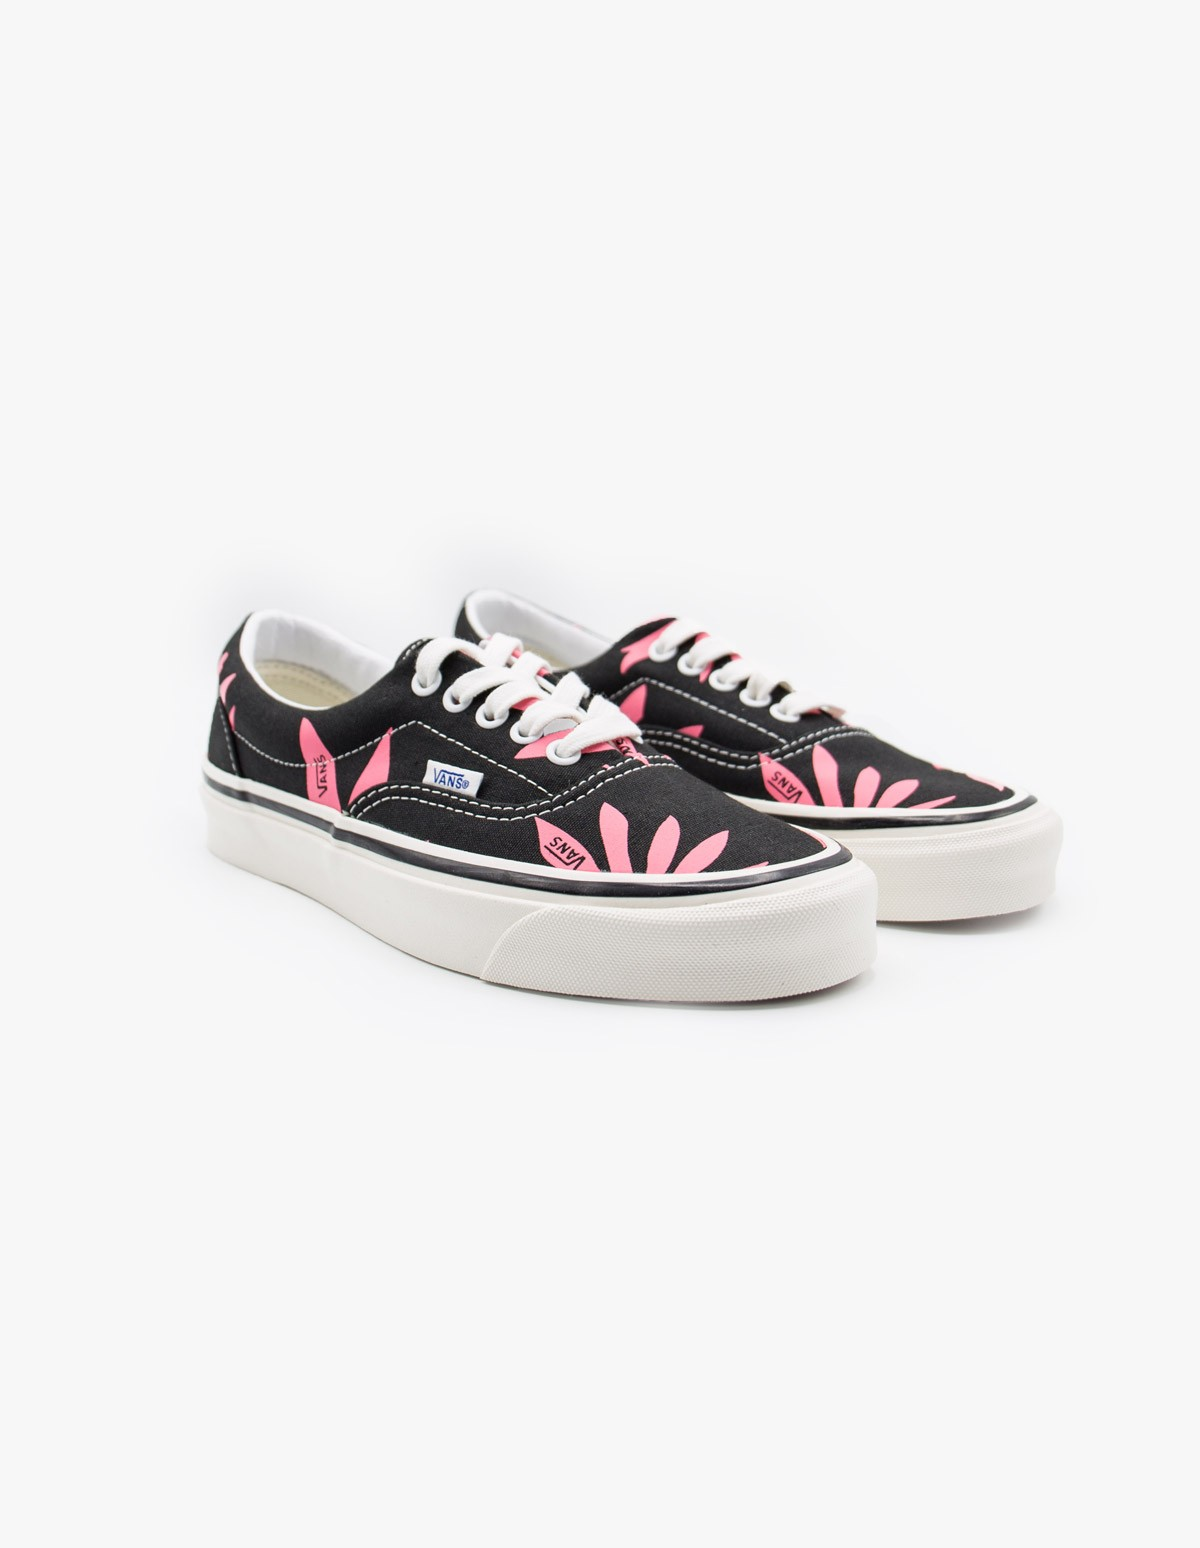 Vans Era 95 DX Anaheim in Black Pink OG